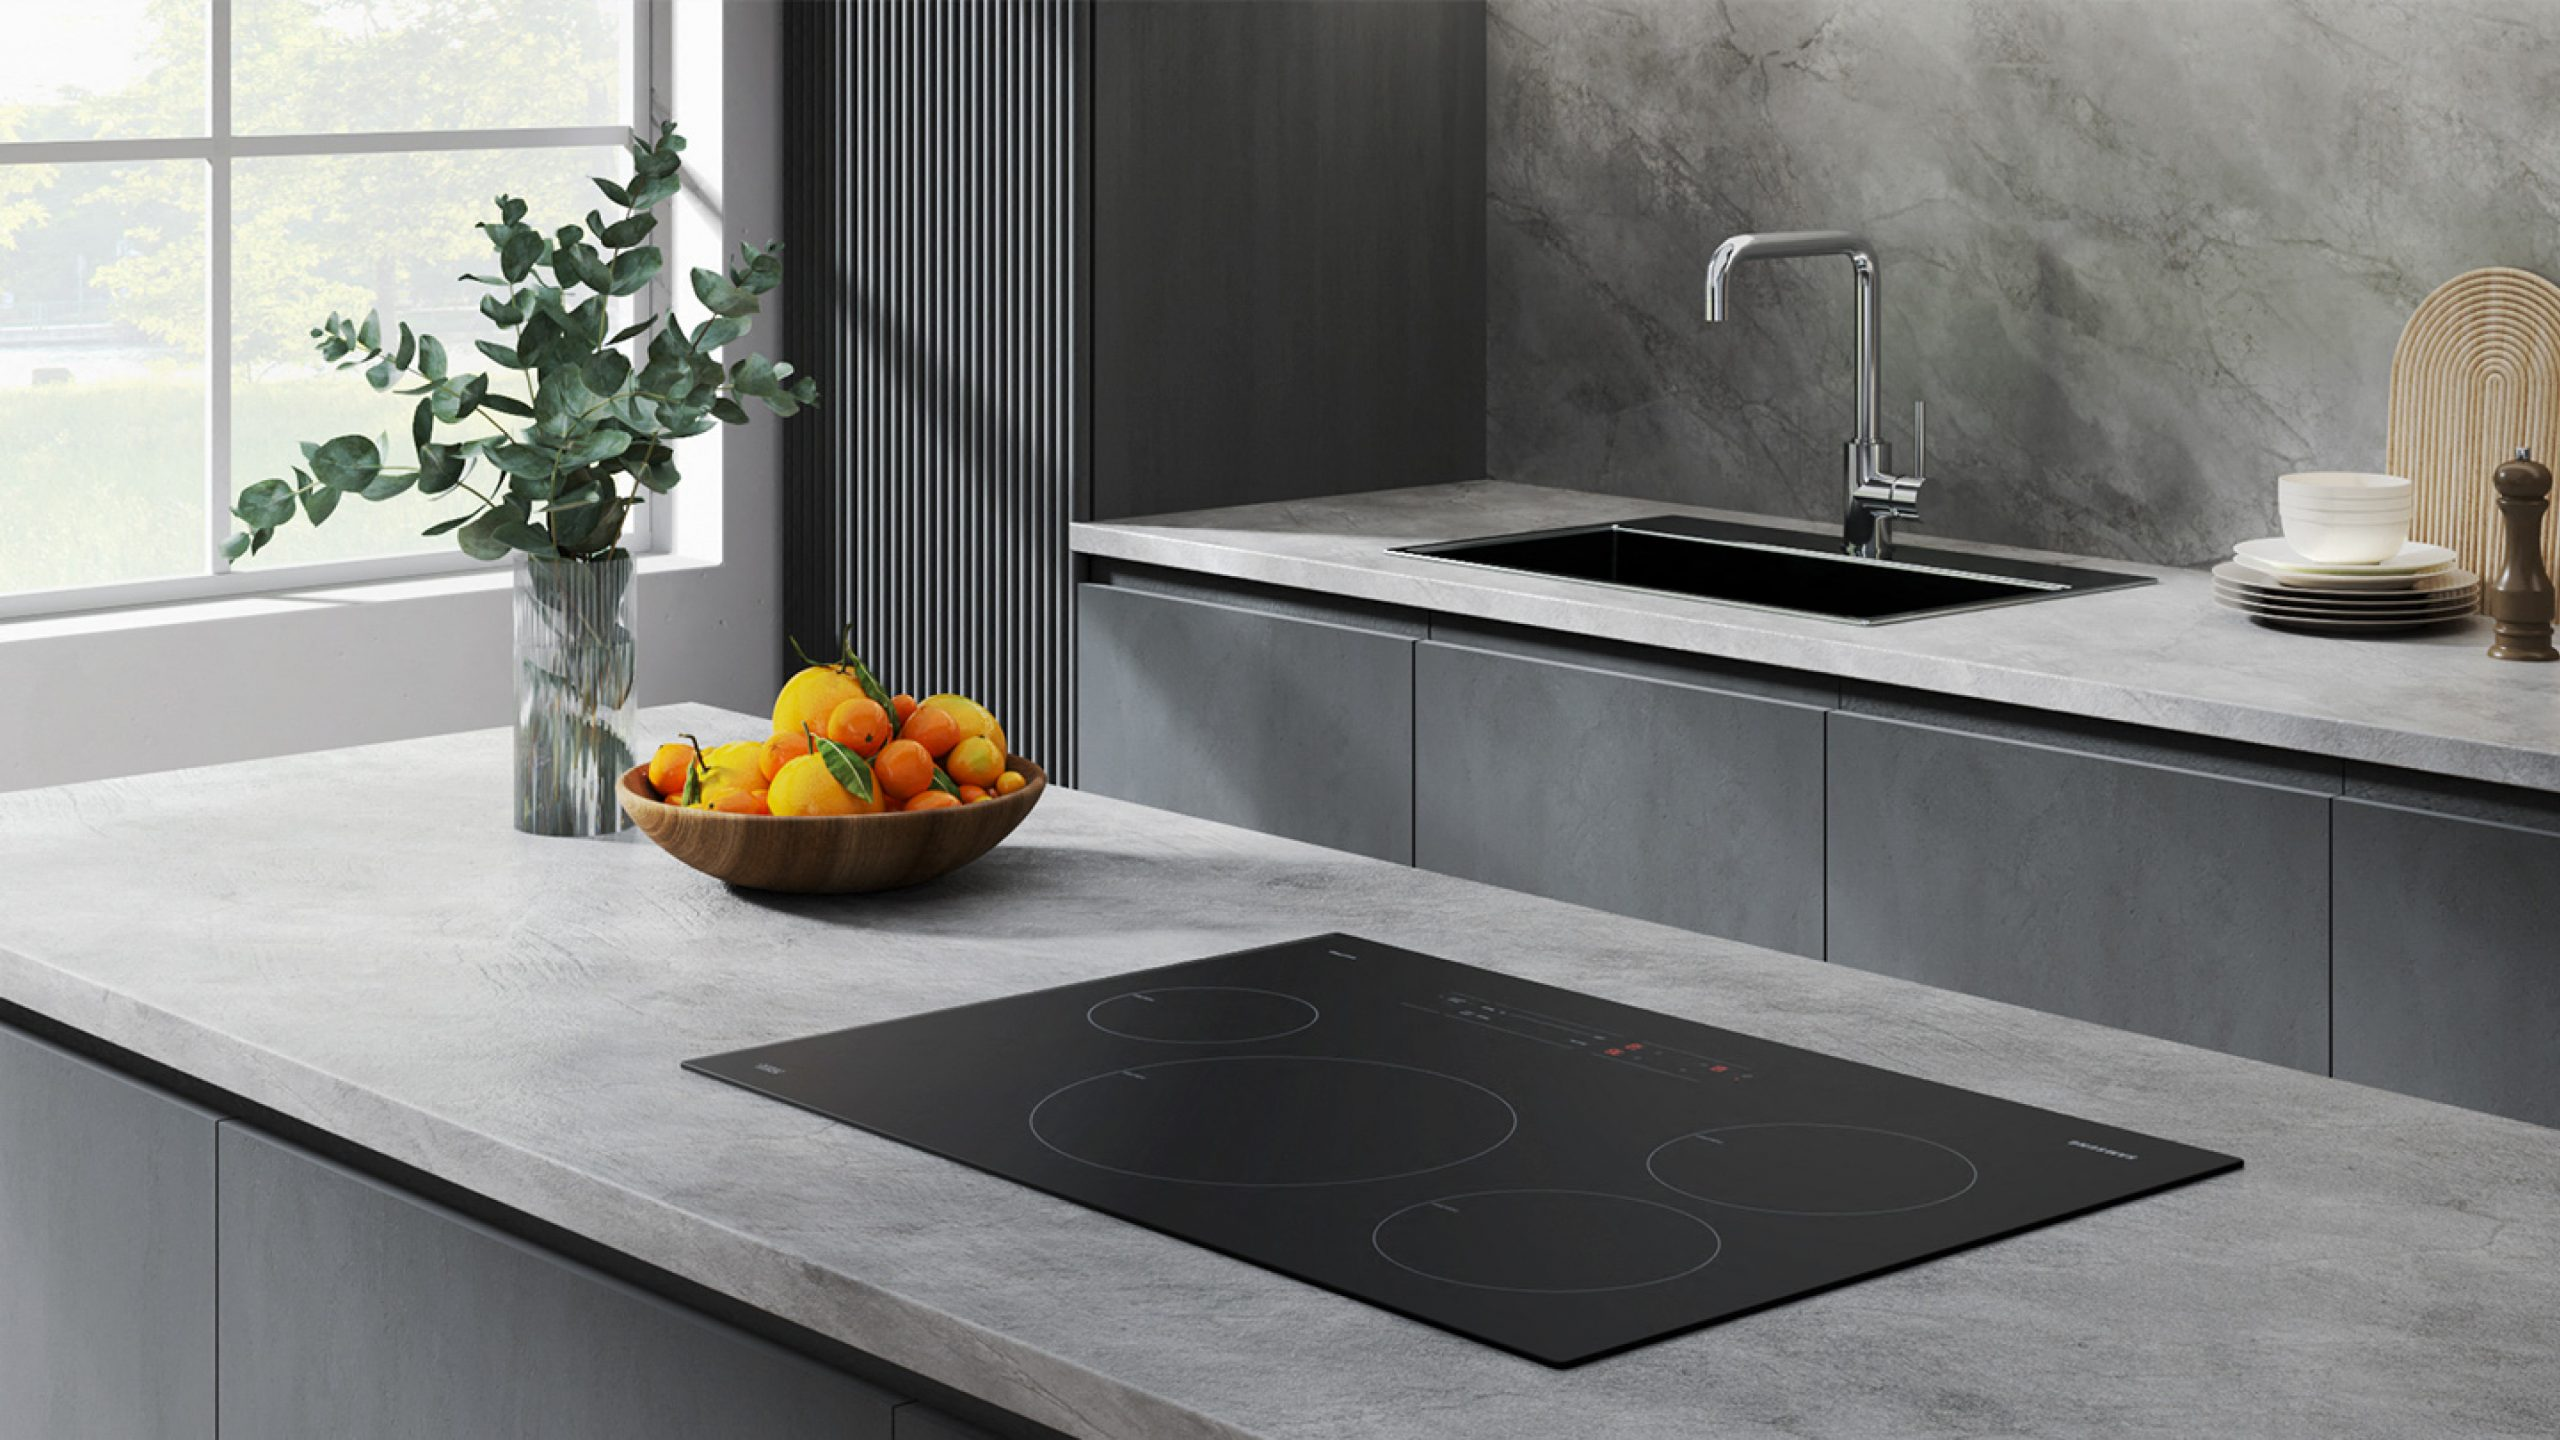 Samsung Smart Induction Built-In Cooktop with Wi-Fi